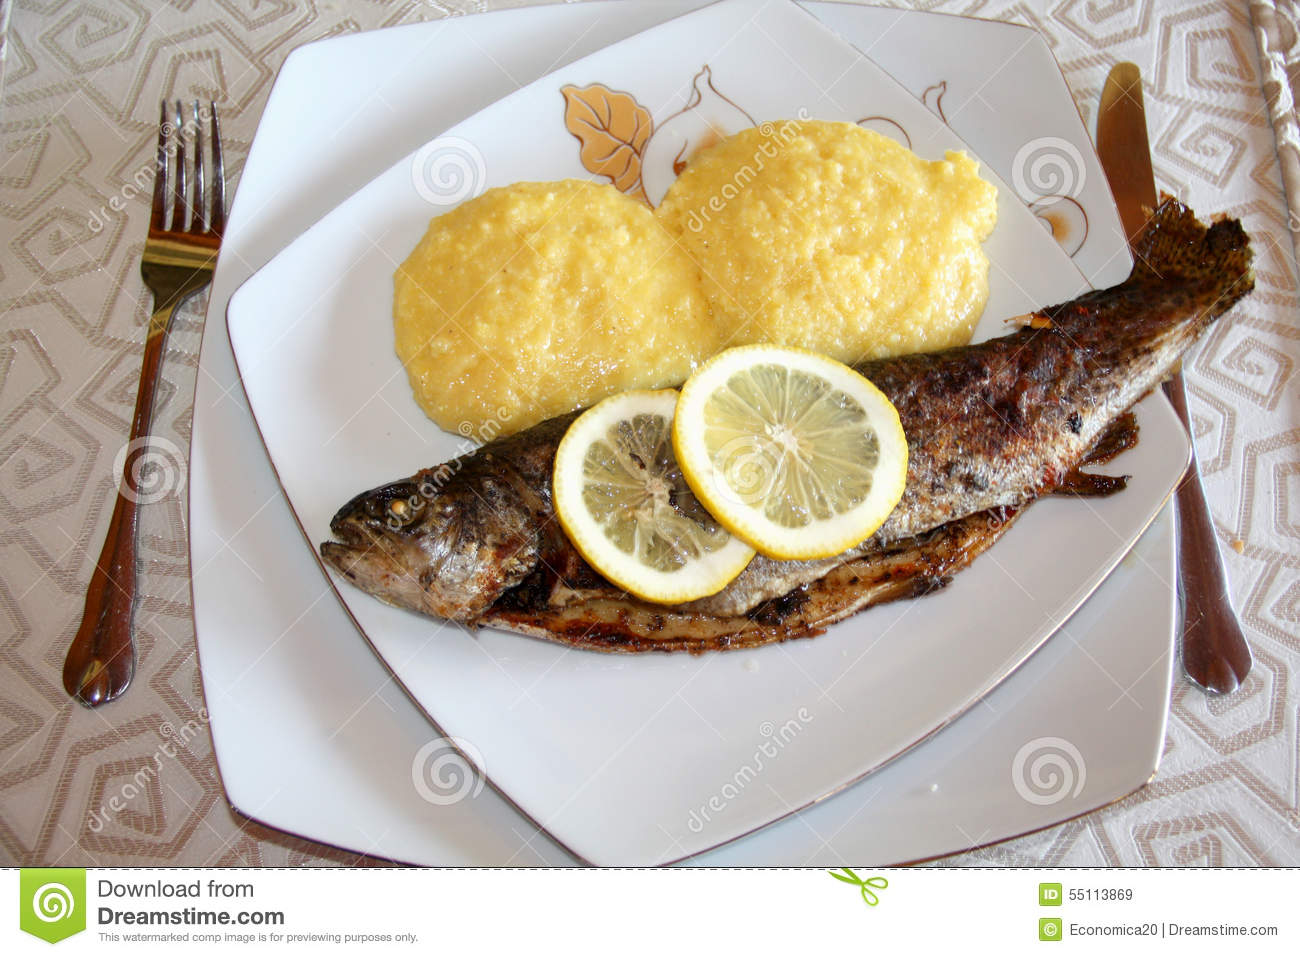 Mamaliga And Whole Grilled Fish Whith Lemon Slices Stock Photo - Image ...